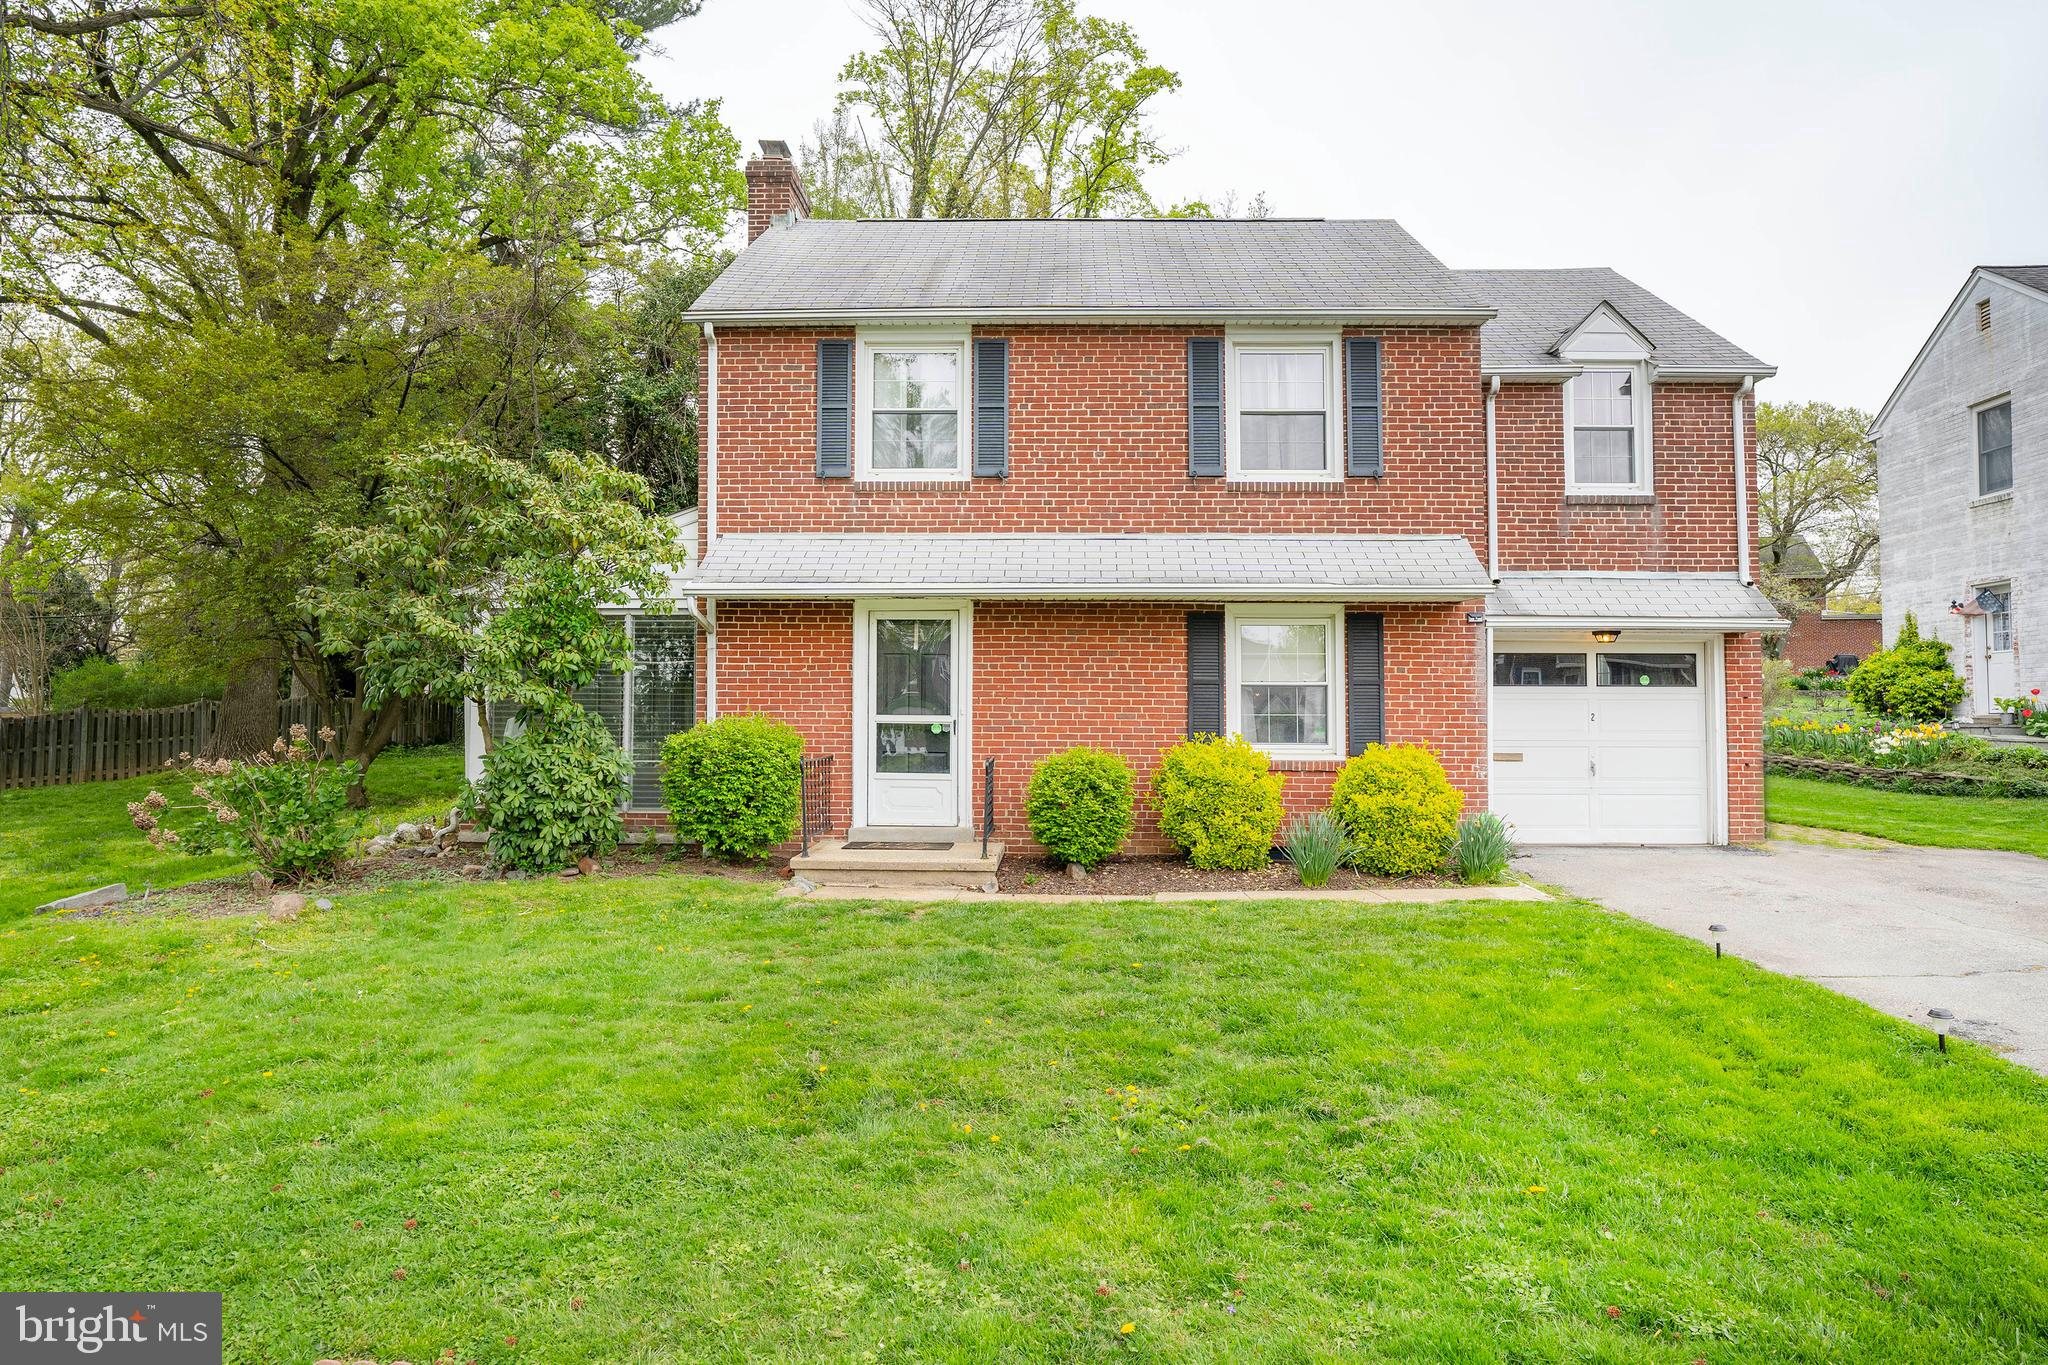 Welcome home to this charming 3 bedroom, 2 bathroom classic brick colonial in popular Delaire Community. You will love the cozy feel when you walk right into a large living space. You will enjoy the look of 2 fireplaces on the first floor (1 gas, 1 wood burning) The traditional layout of the first floor is ready for you to make it your own and make your own upgrades. This home also has an option for a first floor bedroom with a full bath! Upstairs you will find 3 bedrooms and a full bathroom with enough space for everyone. The backyard will not disappoint. Enough space to entertain friends and family for years to come. HVAC Replaced in 2016